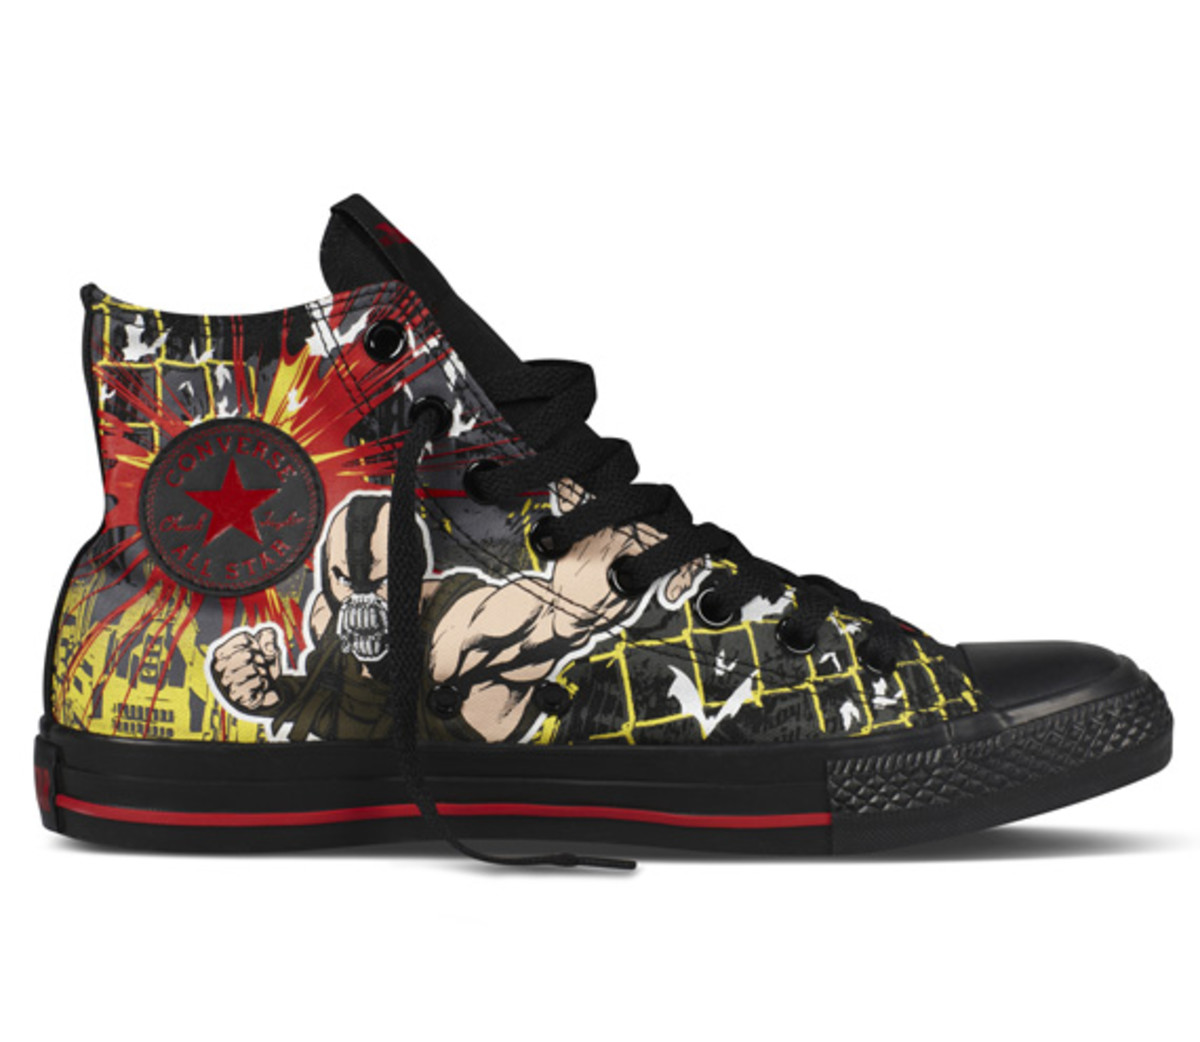 the-dark-knight-rises-converse-chuck-taylor-all-star-collection-03